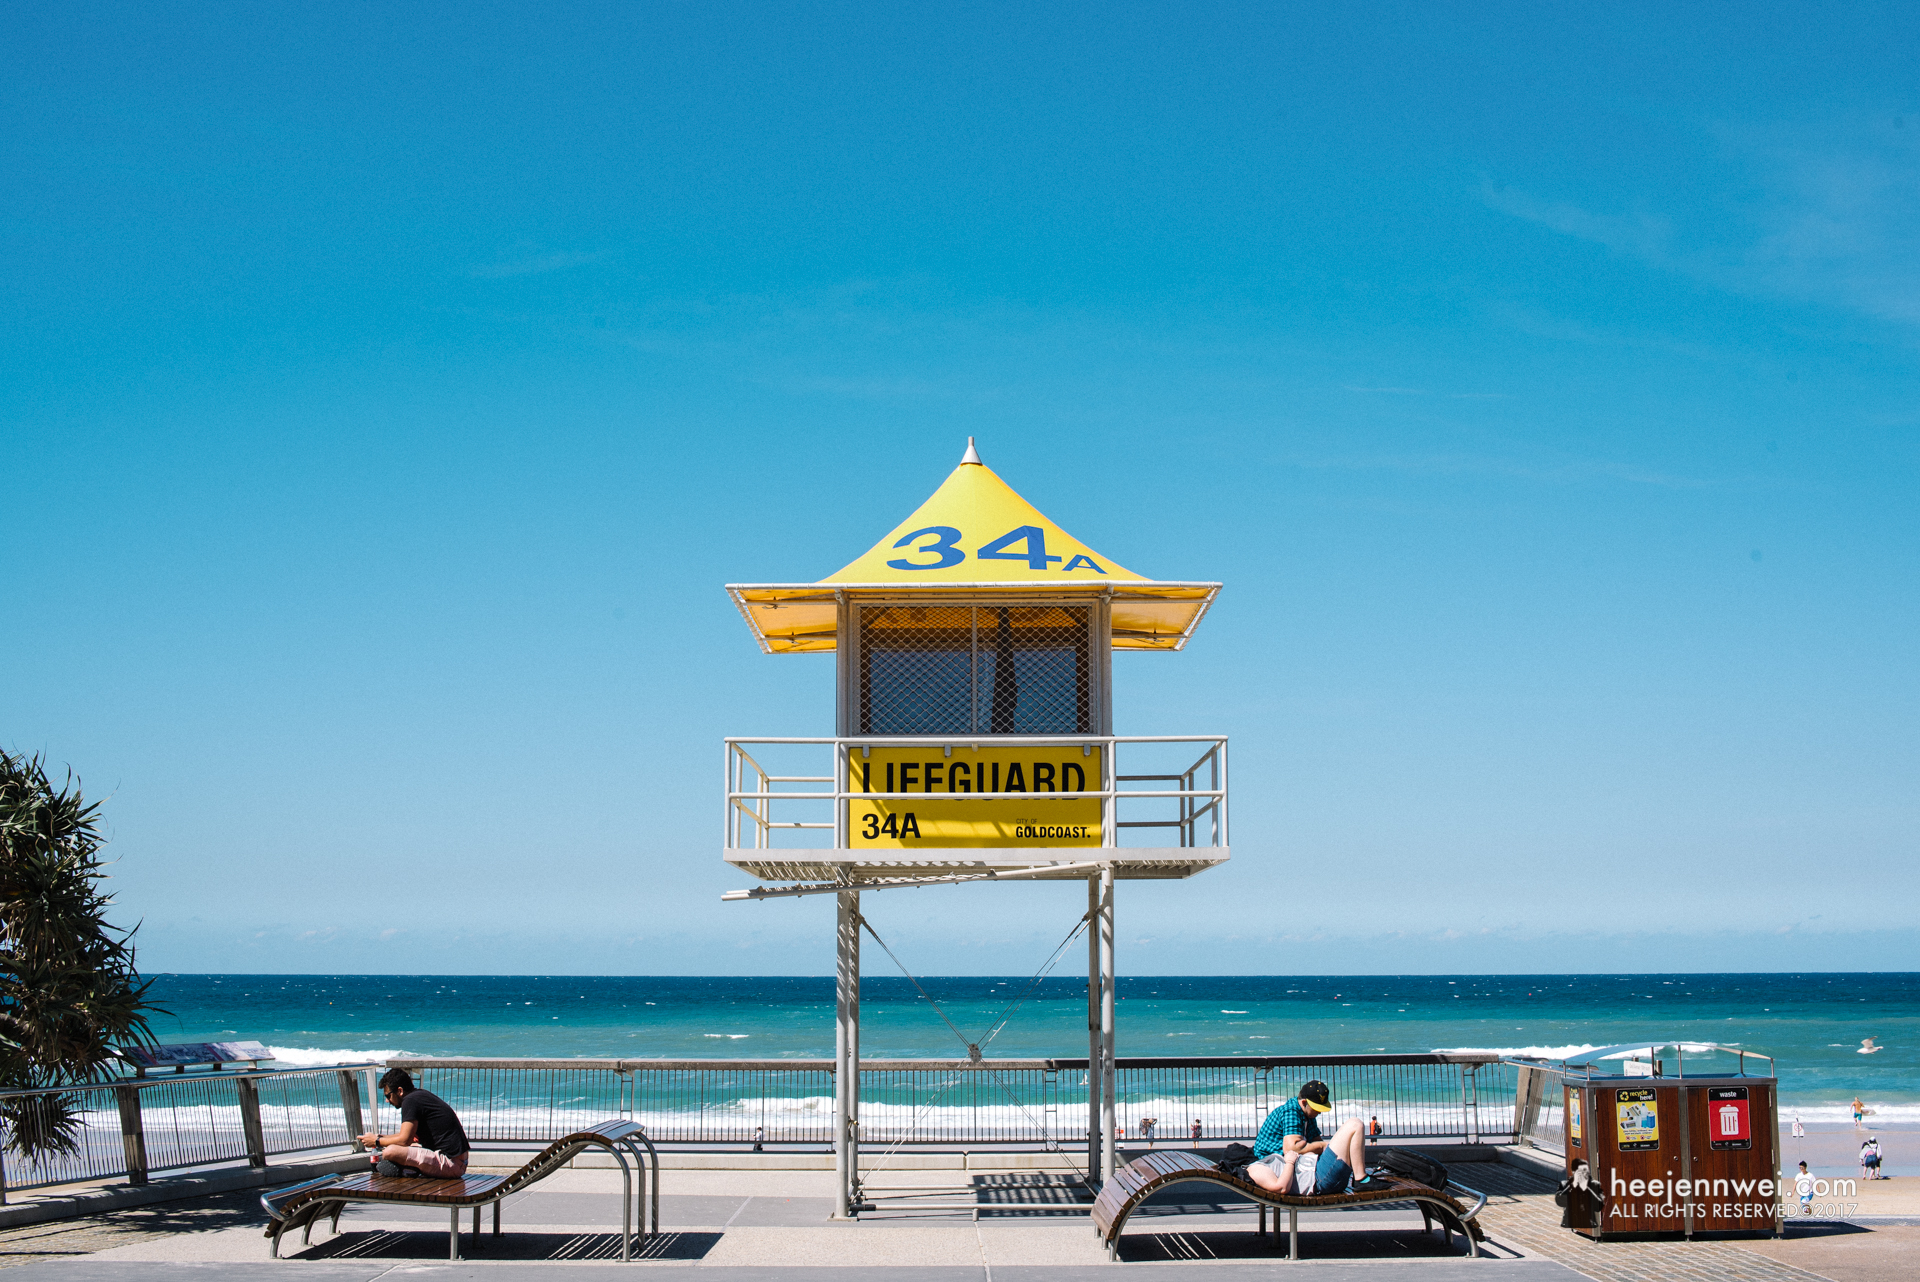 Surveillance tower strategy was initiated back in the days of 1989 for Gold Coast's long stretches of ocean beaches. There are currently 39 specially designed towers, which are numbered and strategically placed along the 60km coastal strip.